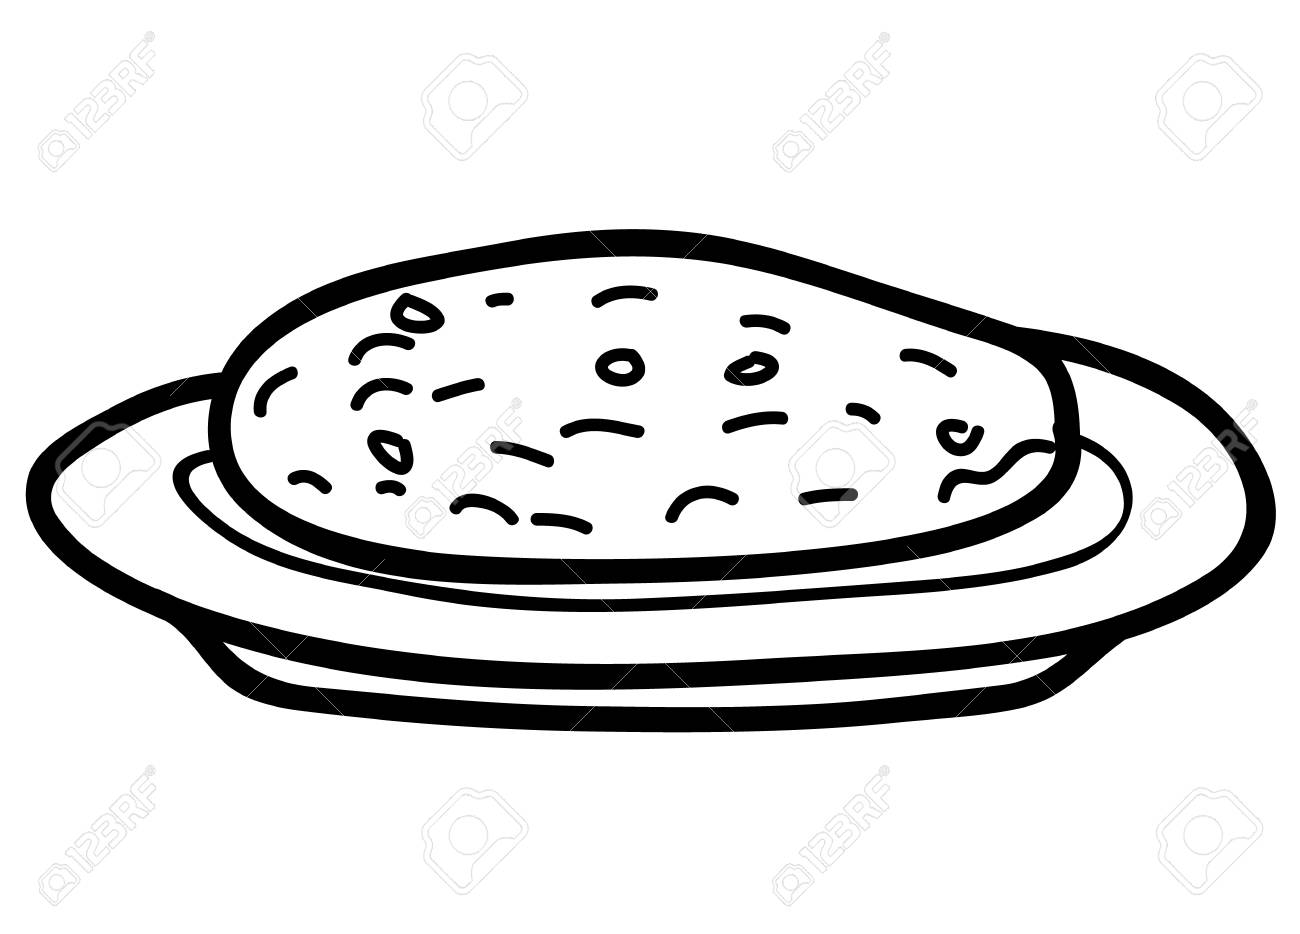 Plate Of Cookies Clipart Black And White & Clip Art Images #10459.